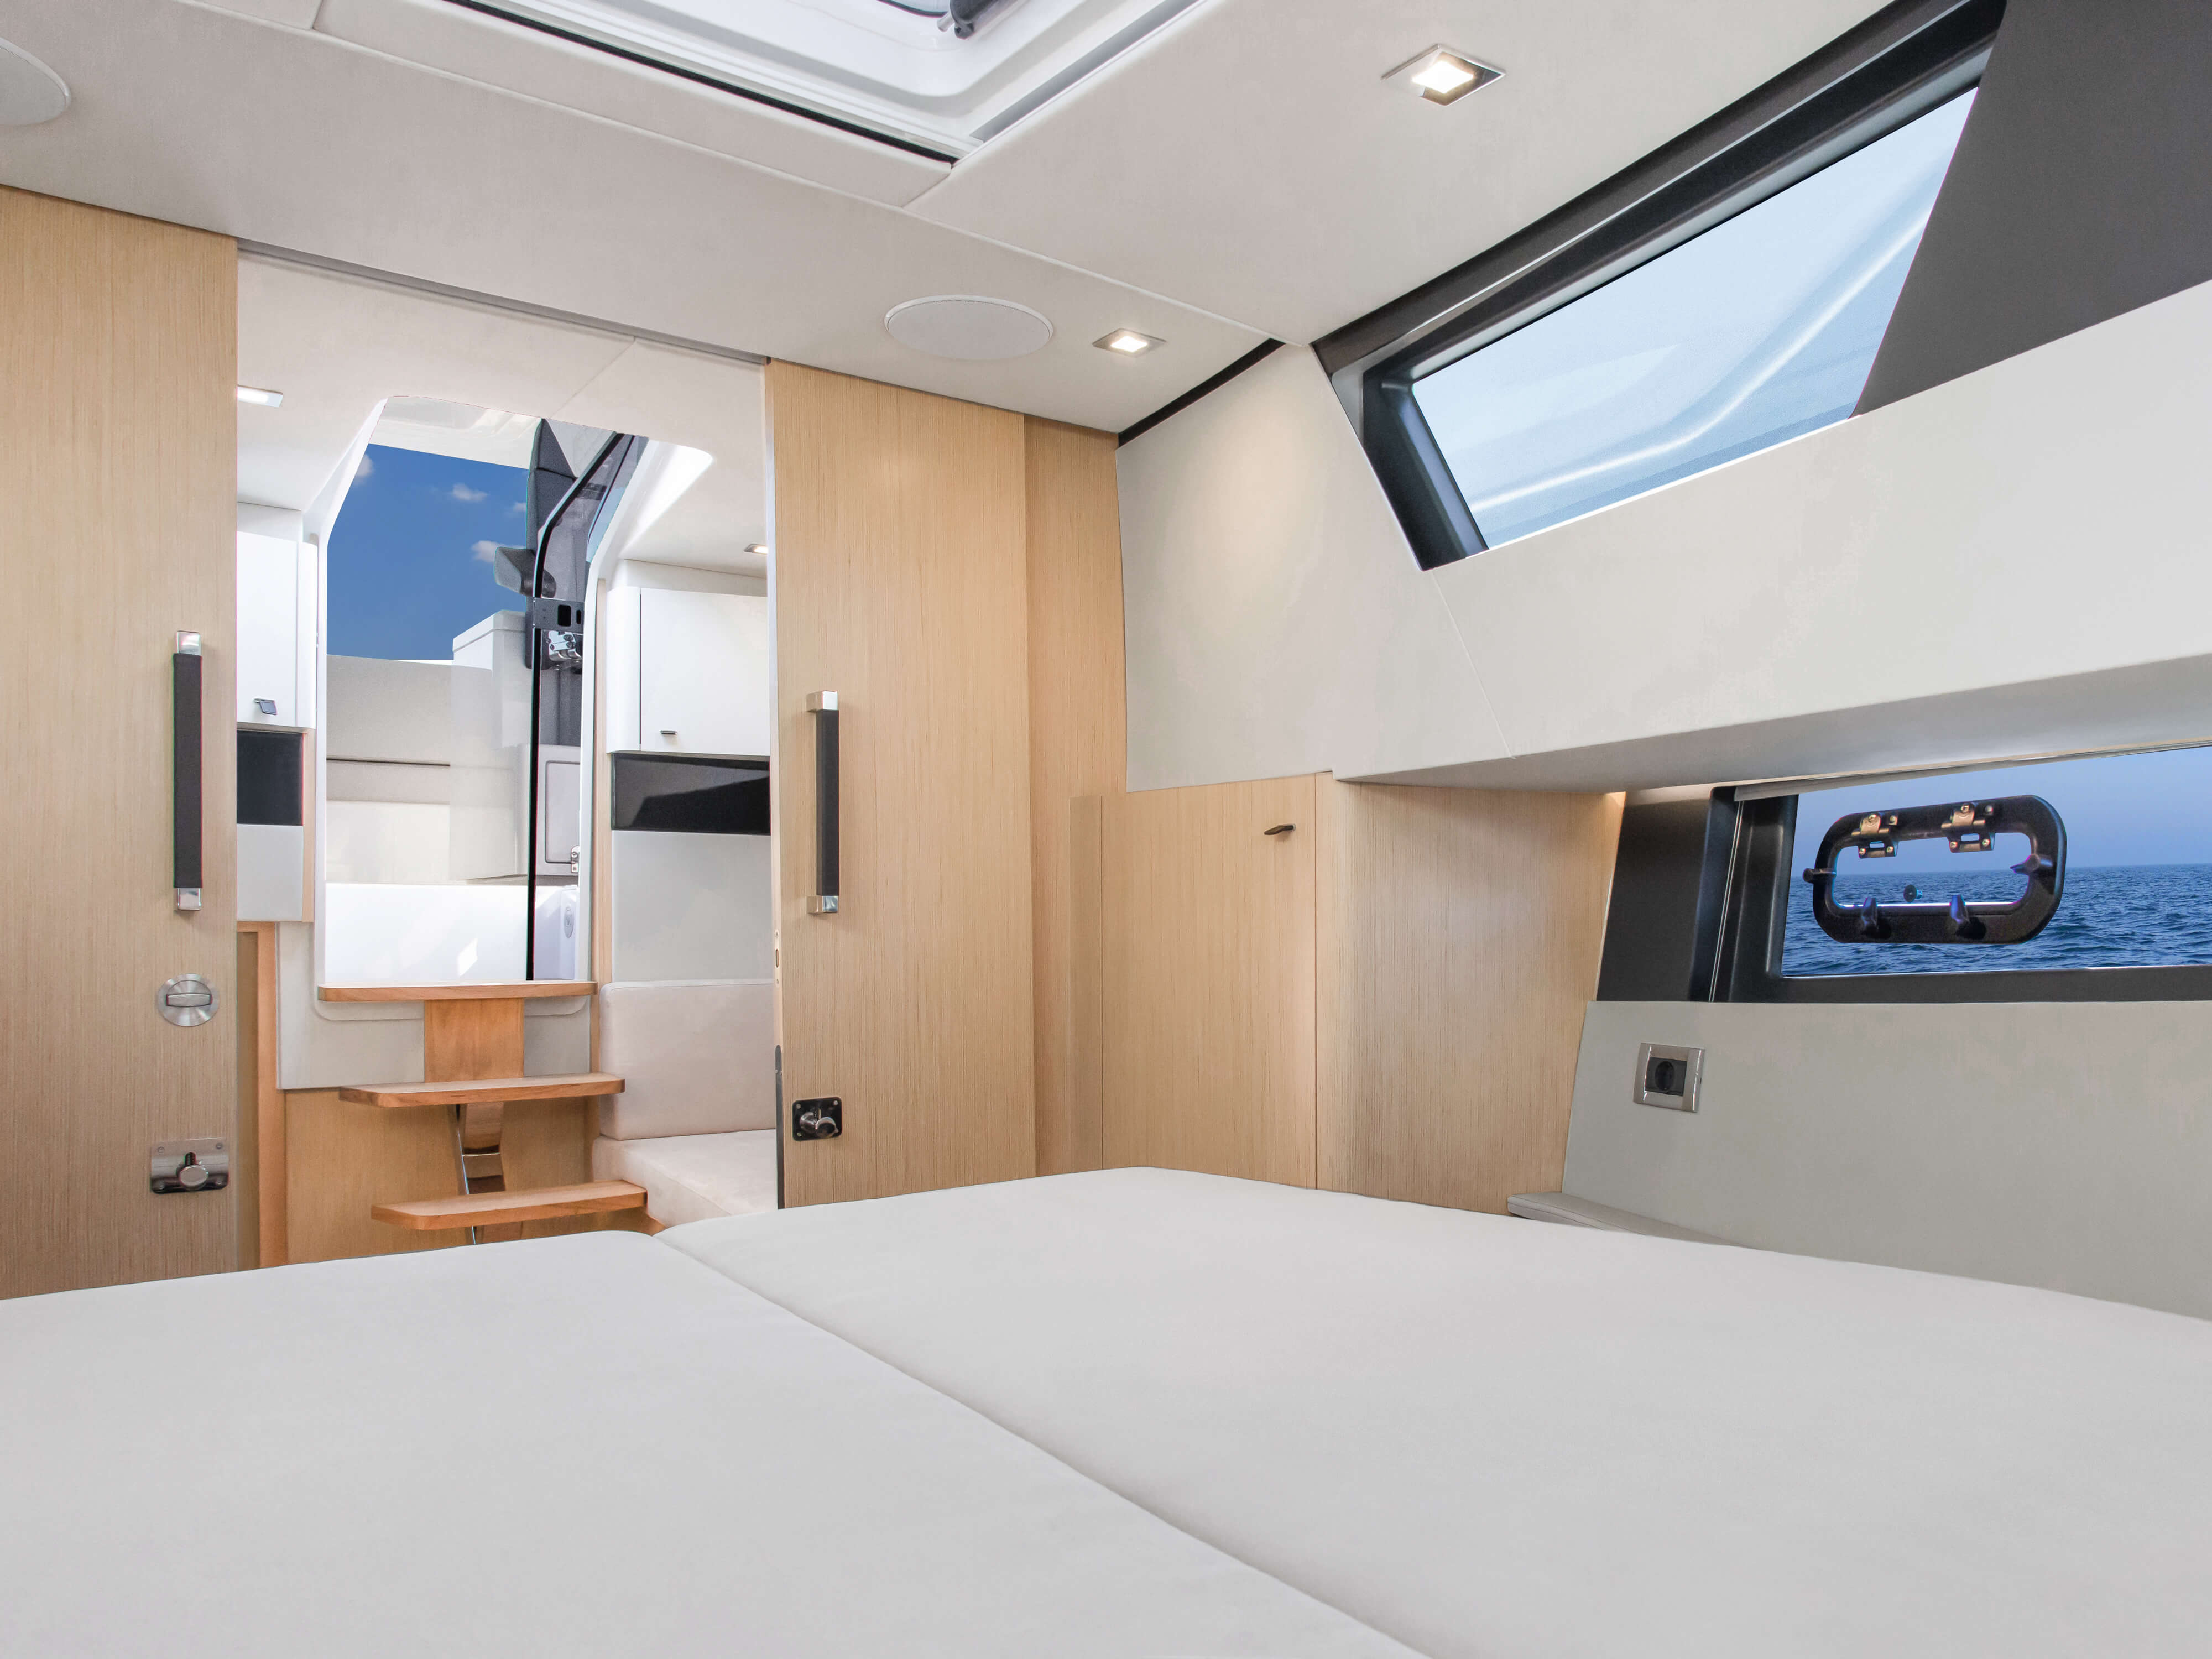 FJORD 41 XL owner's cabin